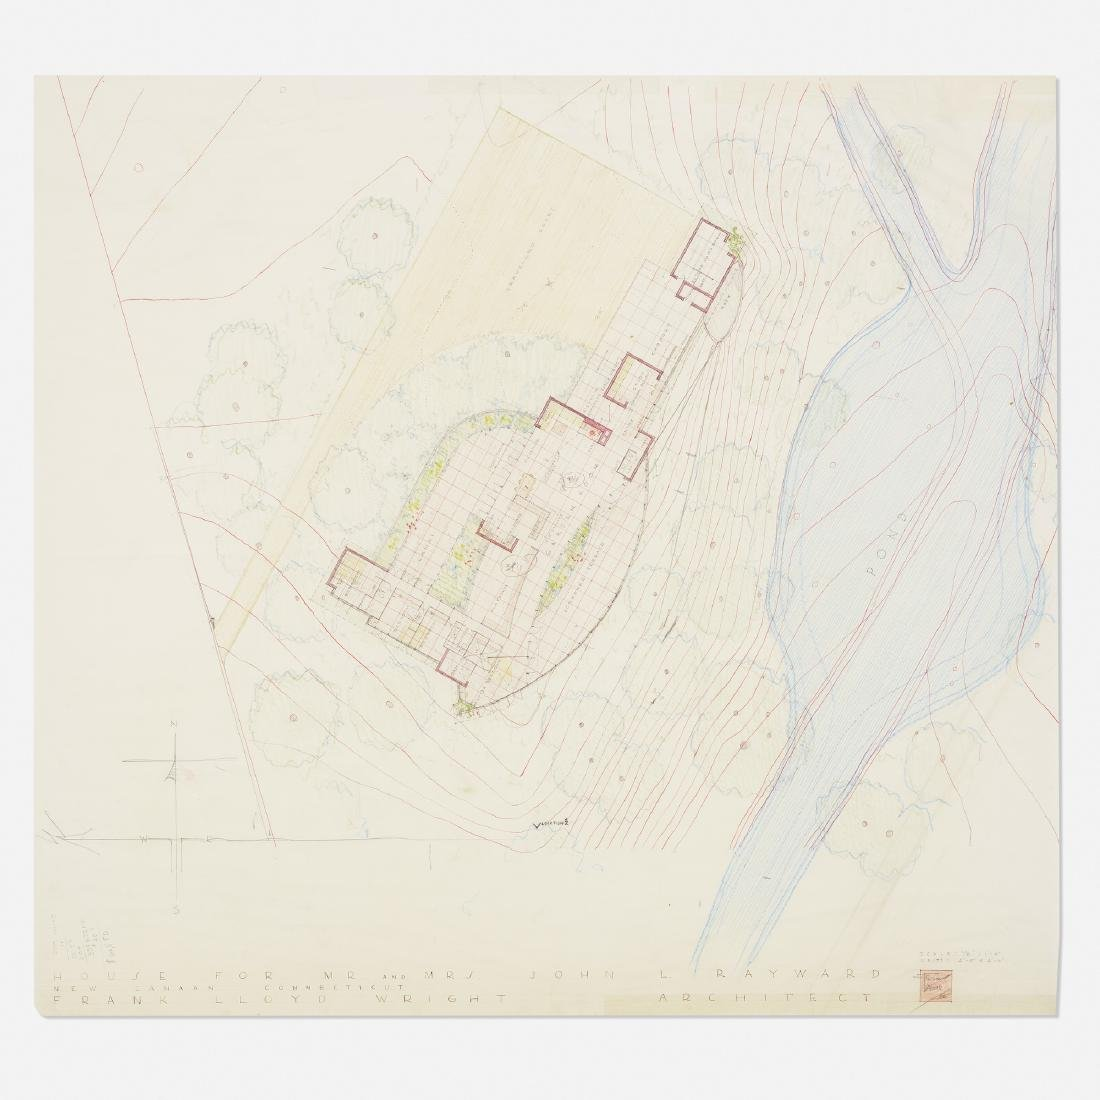 Frank Lloyd Wright, Plan for the John L. Rayward House